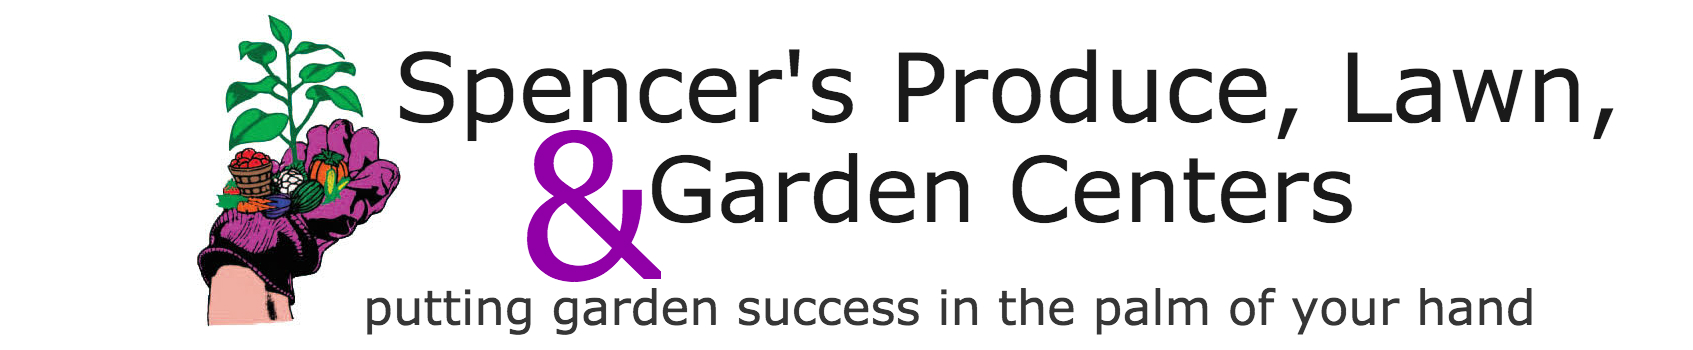 Spencer's Produce, Lawn, & Garden Centers, Inc